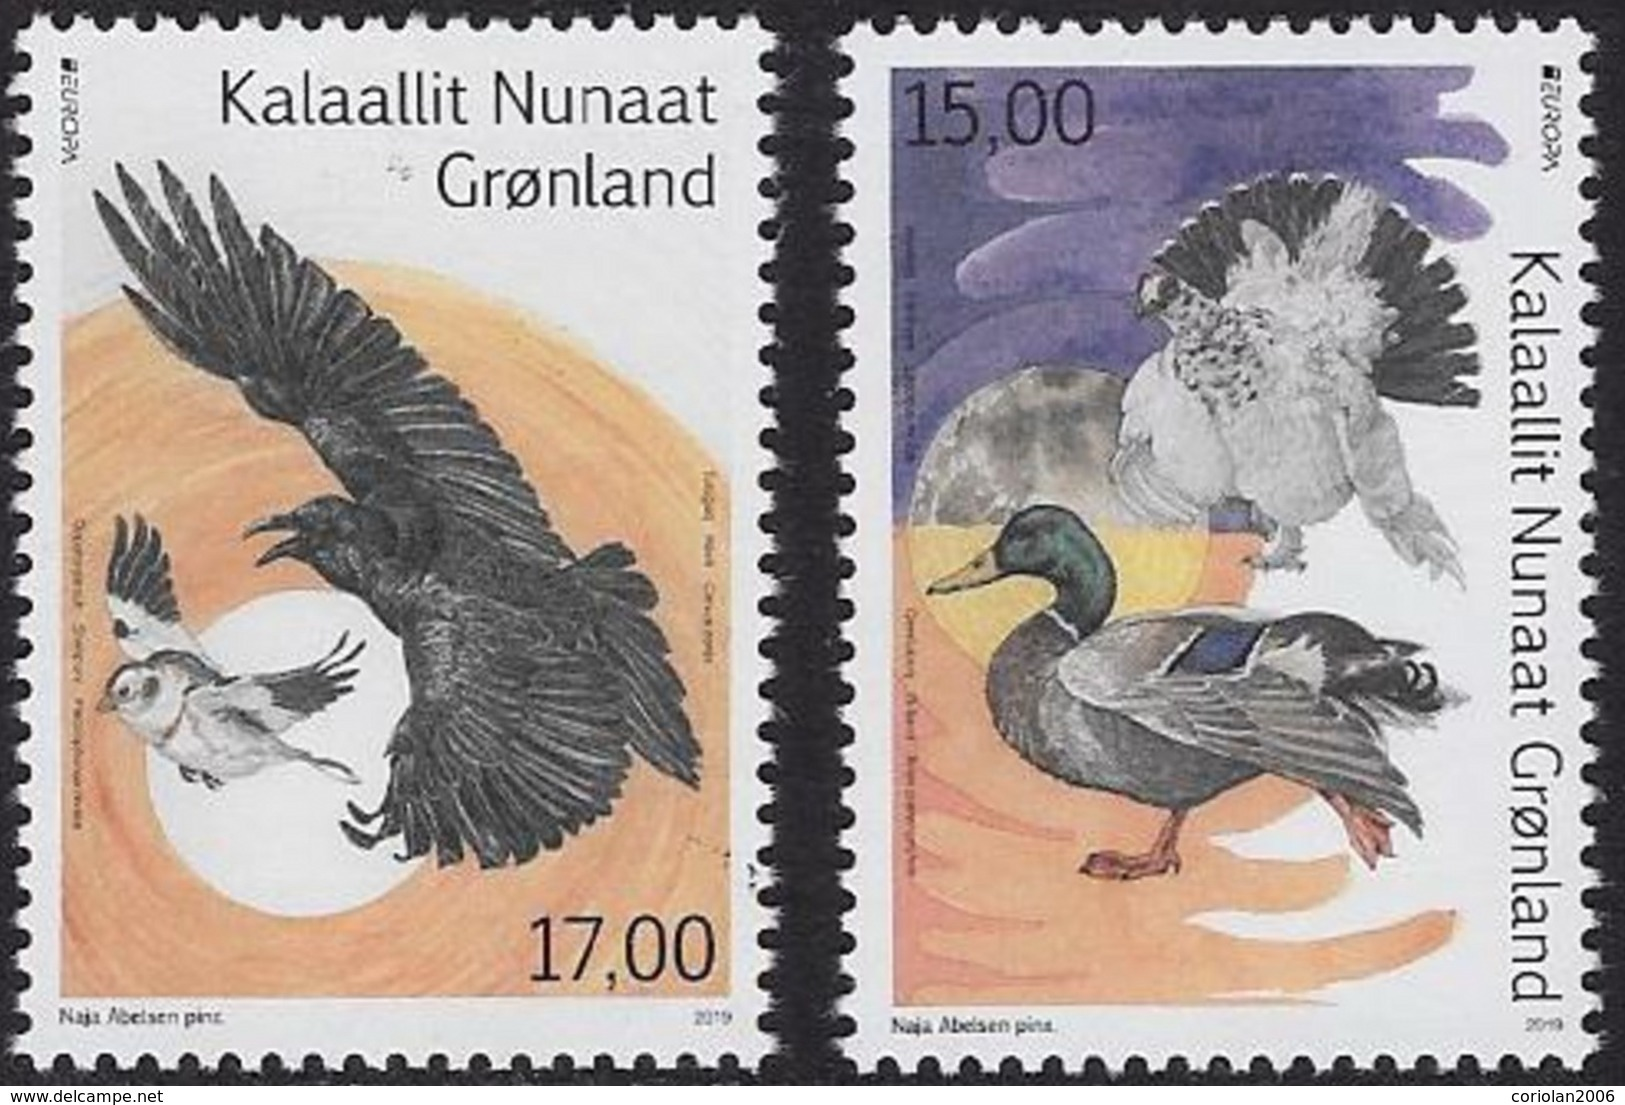 Europa 2019 / Greenland / Set 2 Stamps - 2019